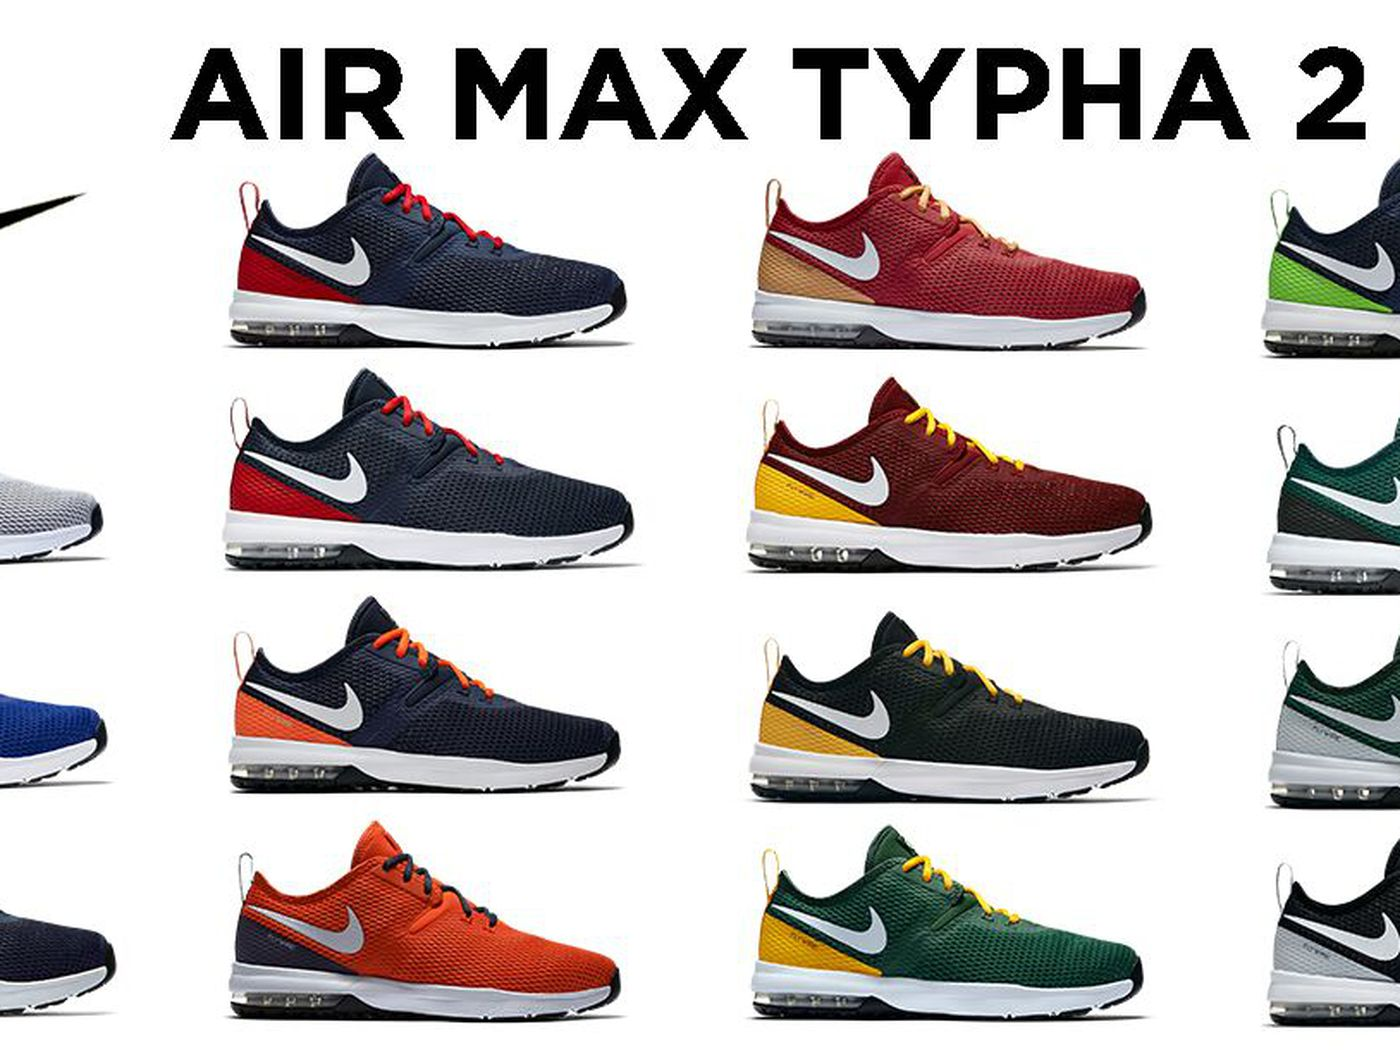 Nike releases new NFL-themed Air Max Typha 2 shoe collection - SBNation.com 88ac434b7